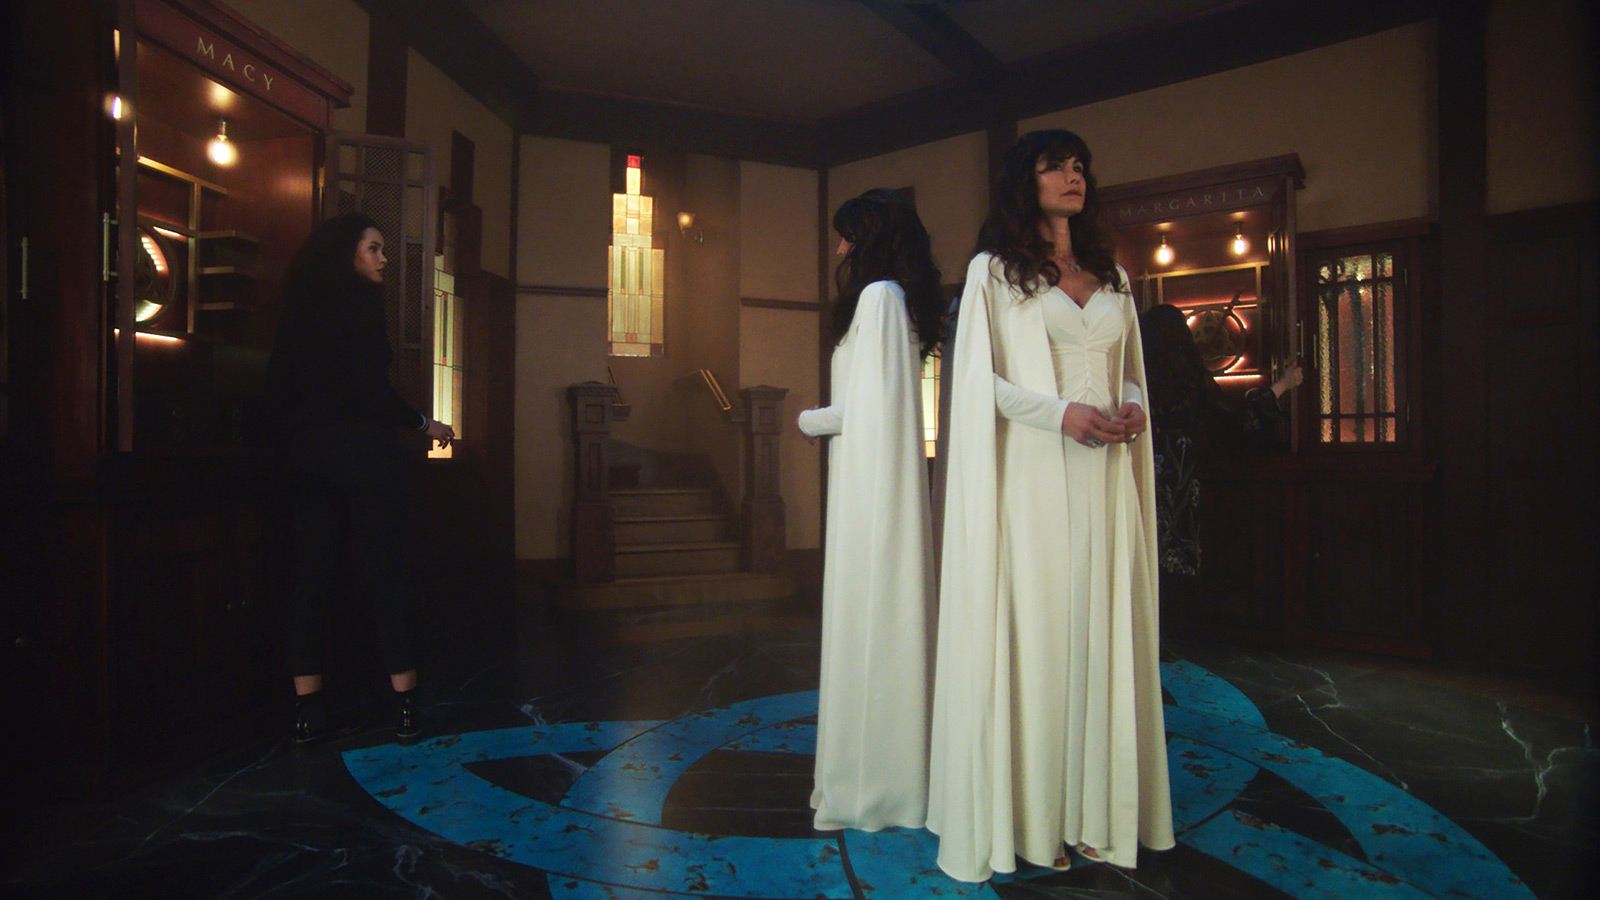 CHARMED: S1 - VERA MANOR - ARMORY - SCREEN STILL